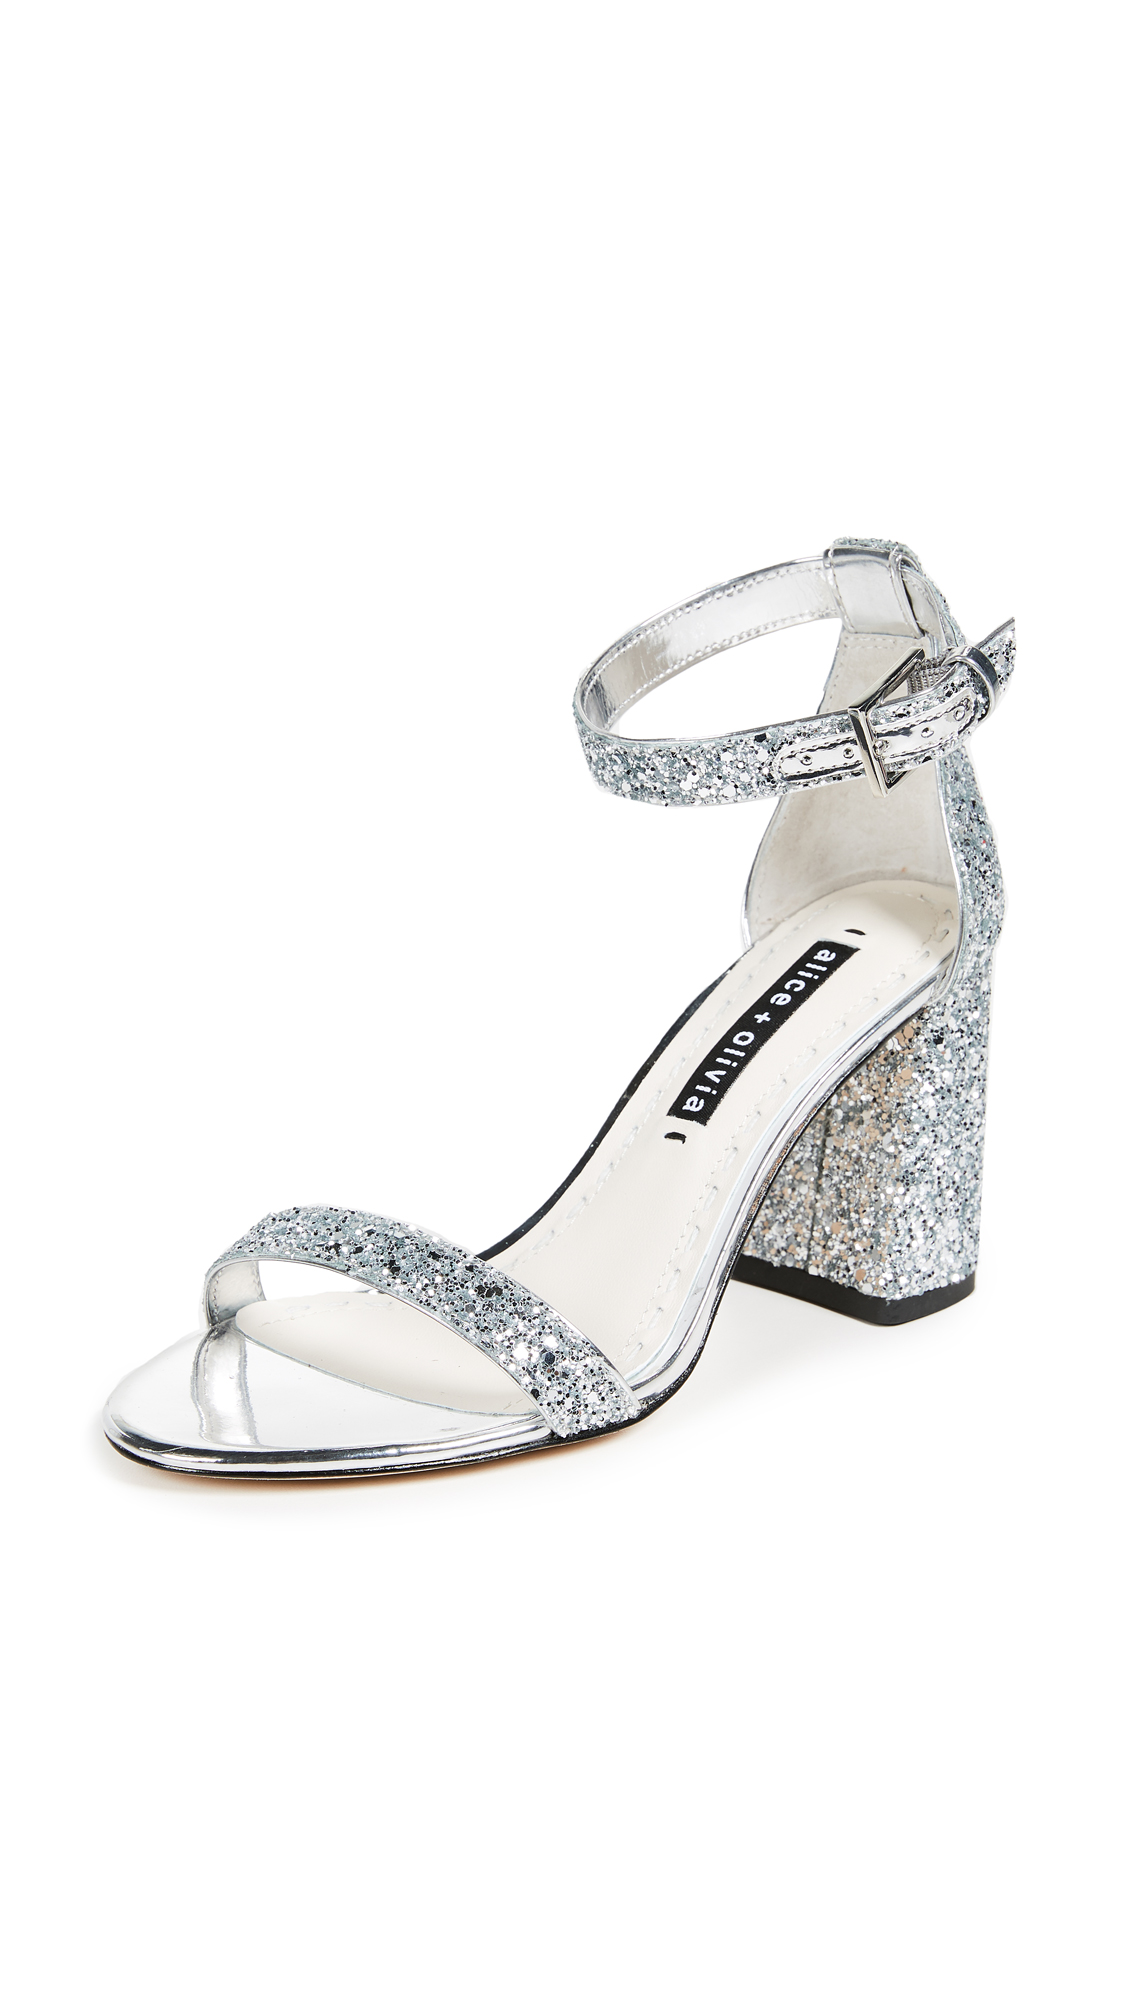 alice + olivia Lillian Block Heel Sandals - Silver